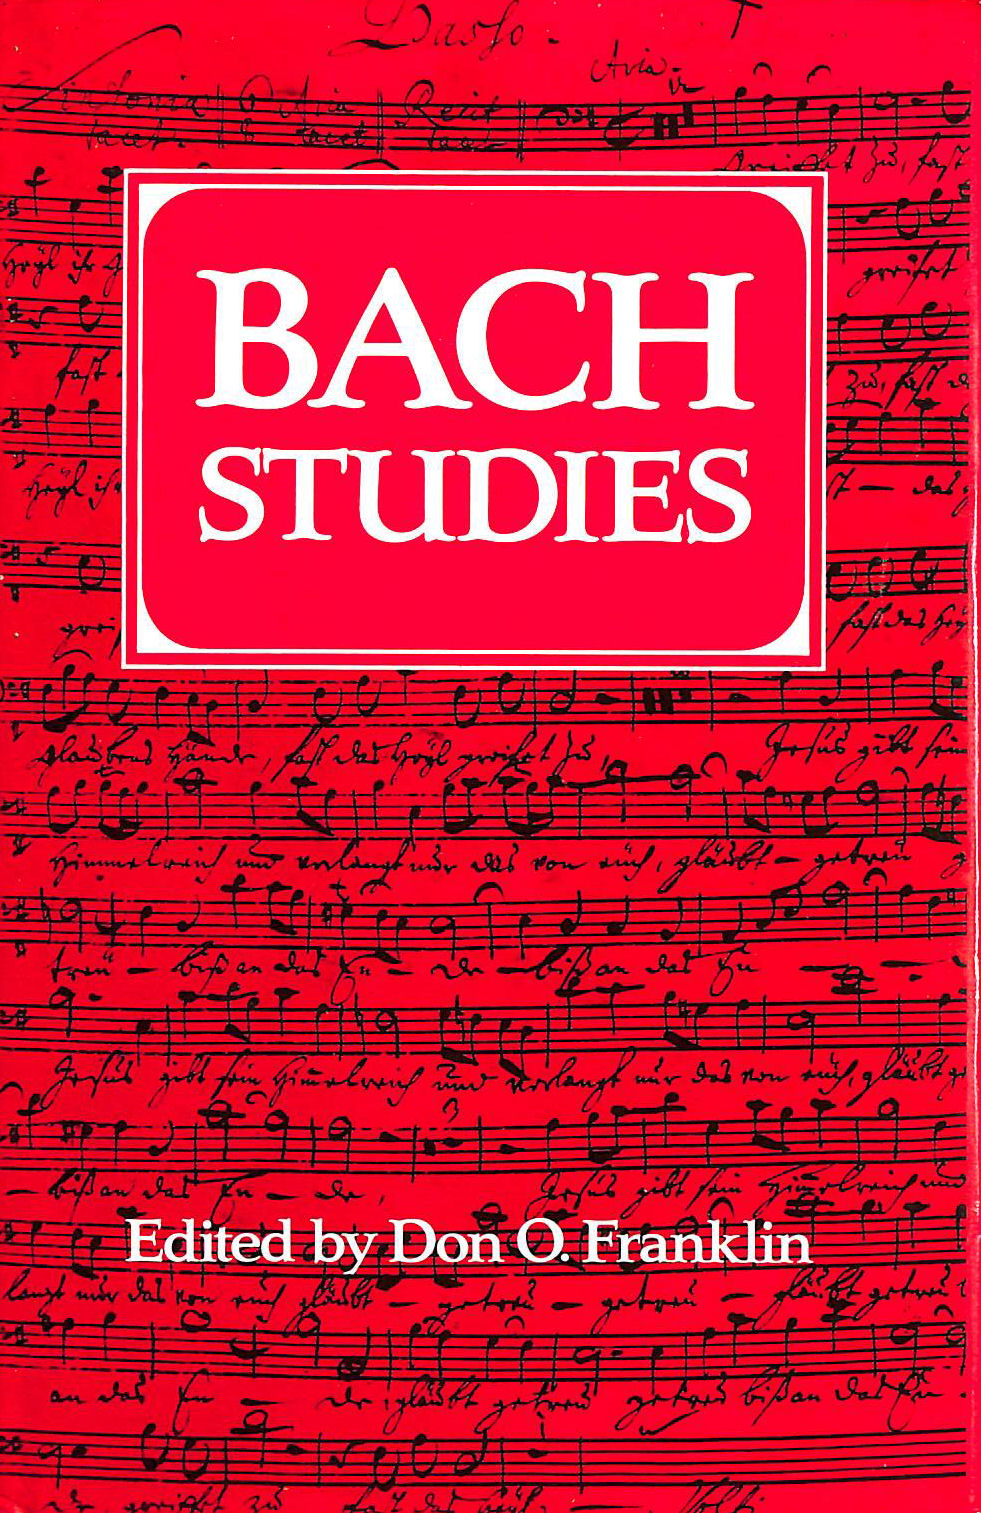 Image for Title: Bach Studies